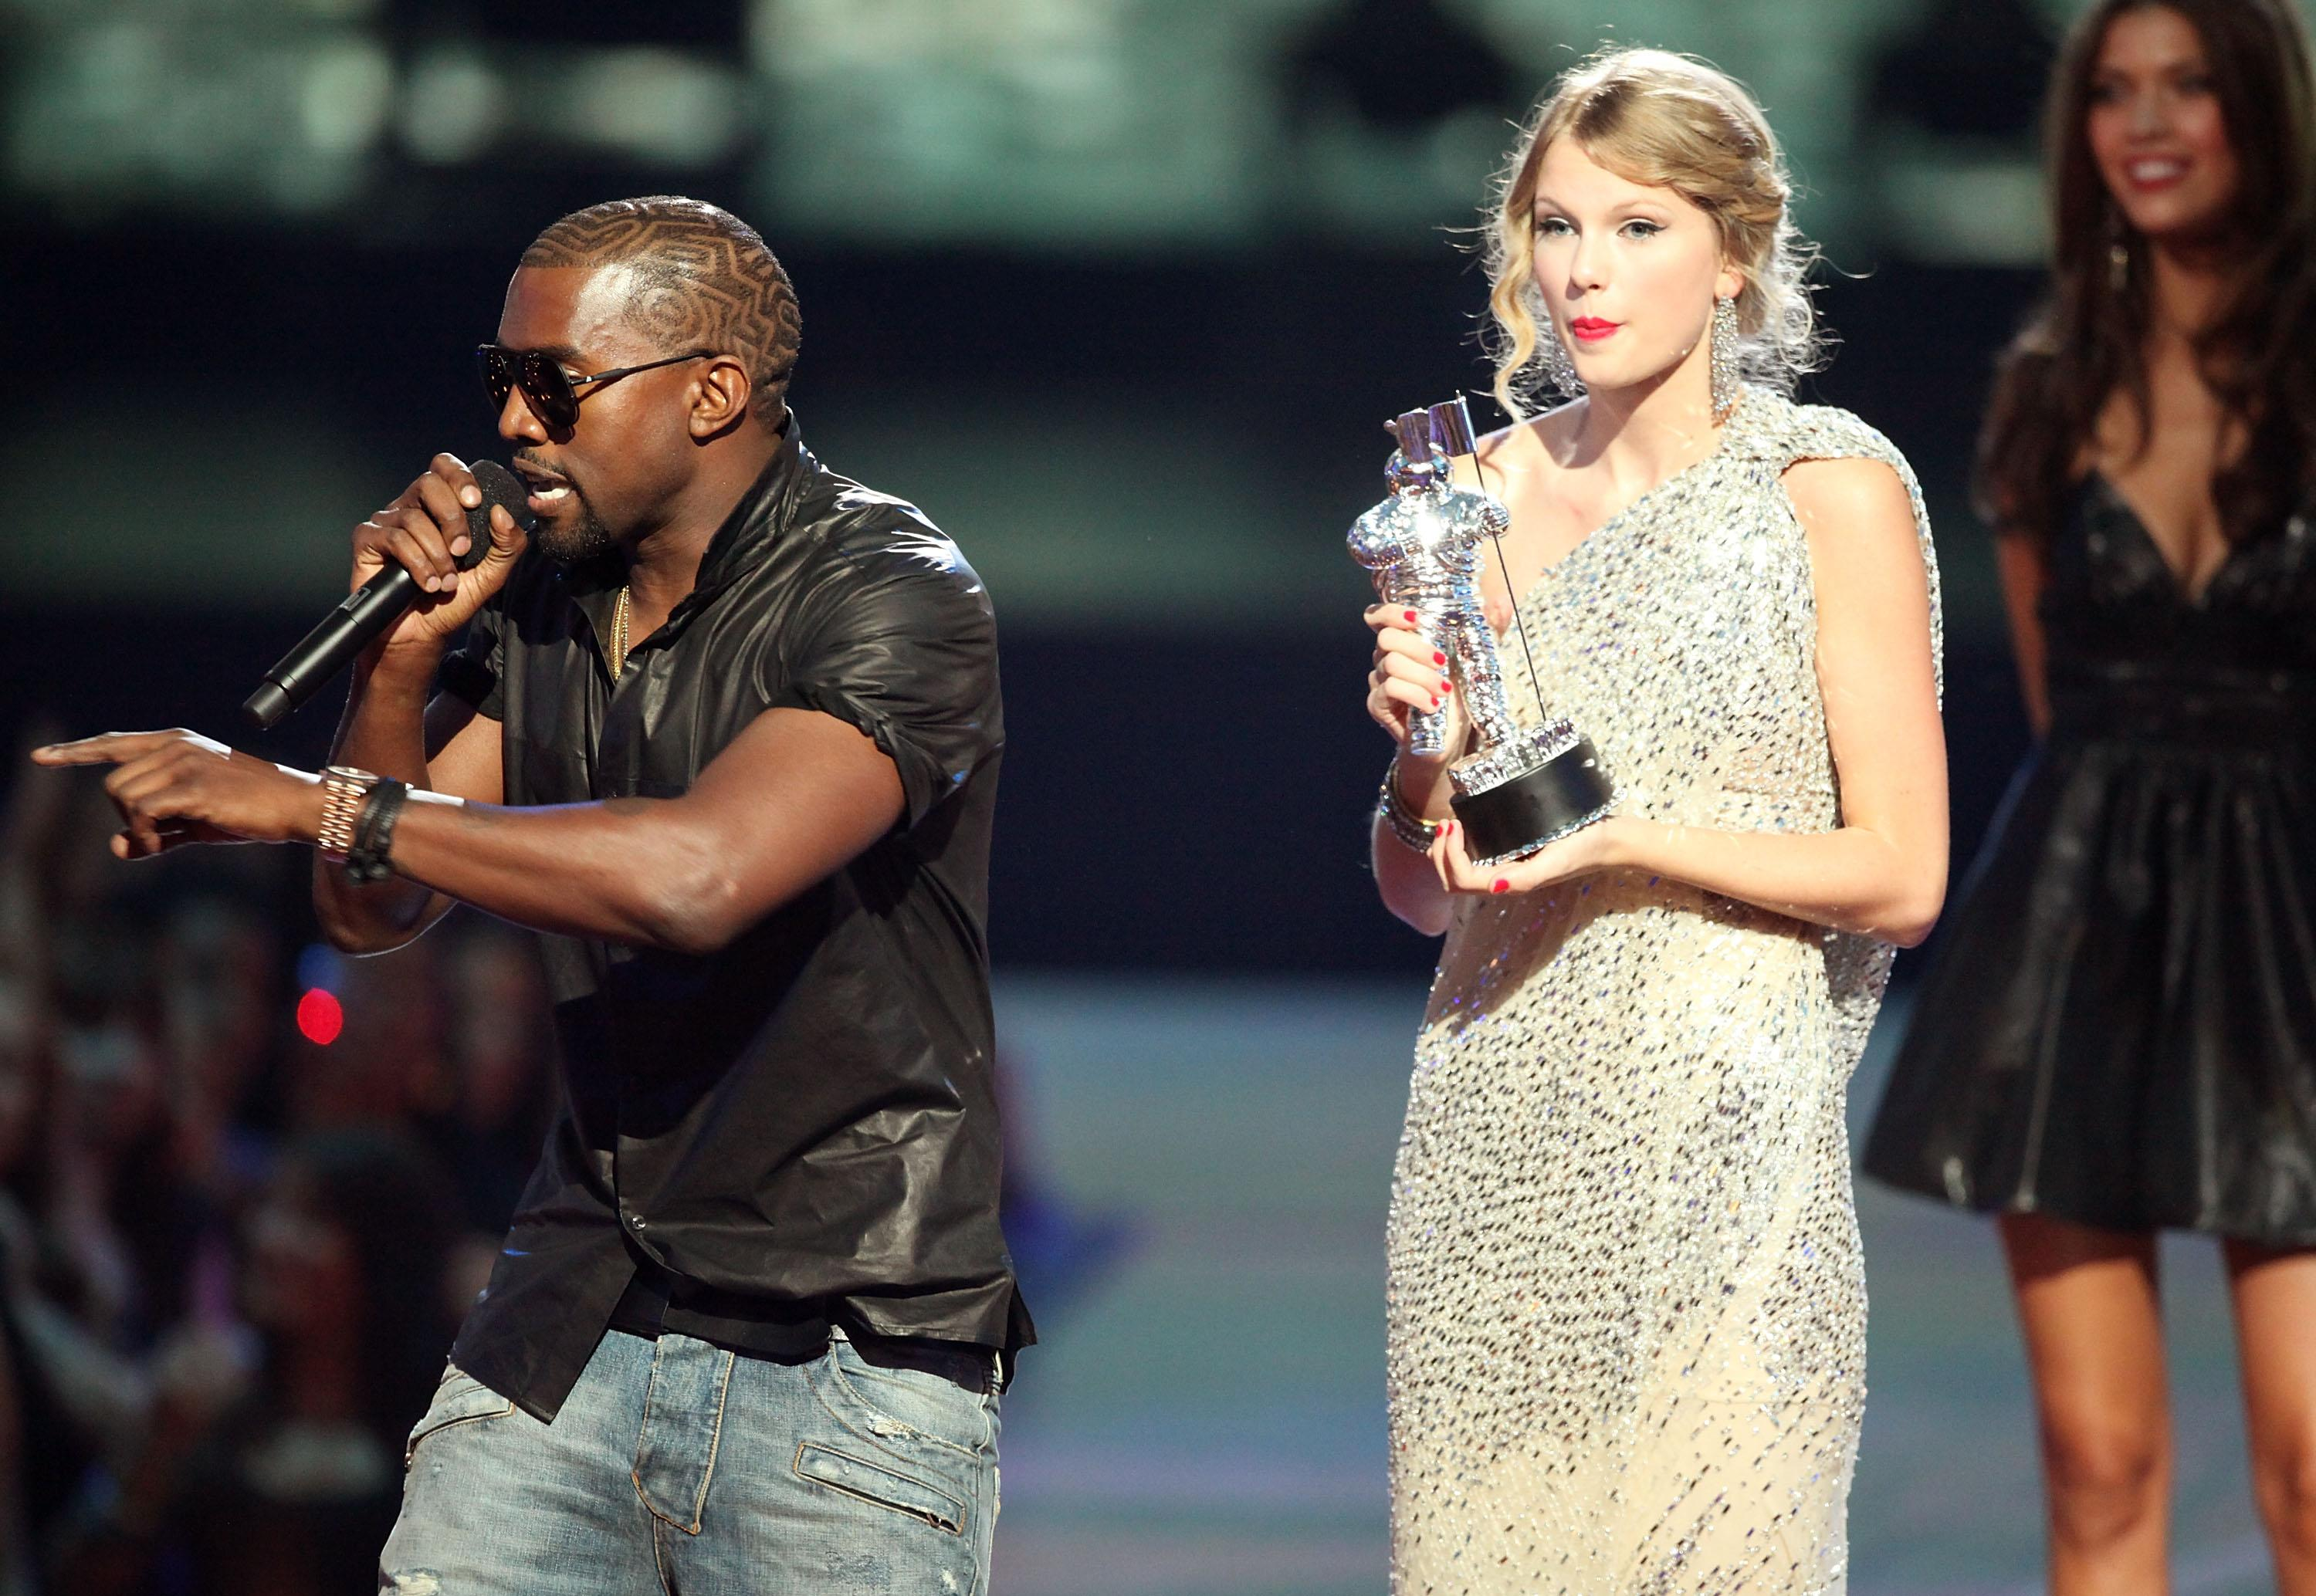 Kanye West and Taylor Swift at he 2009 MTV Video Music Awards in New York City.